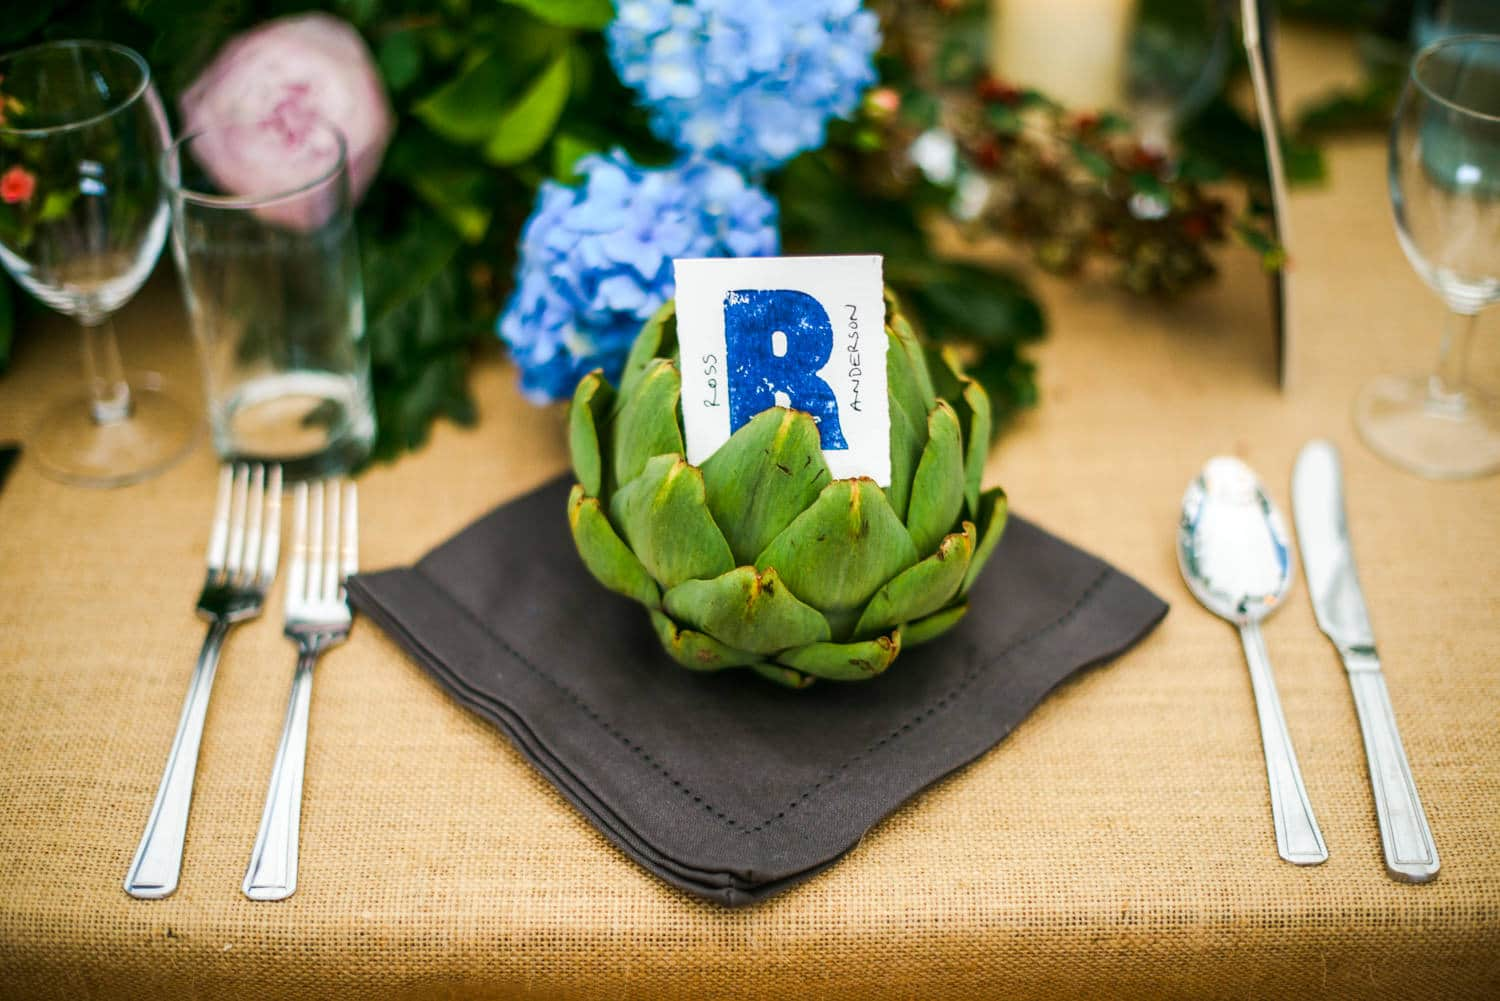 artichoke as wedding decor